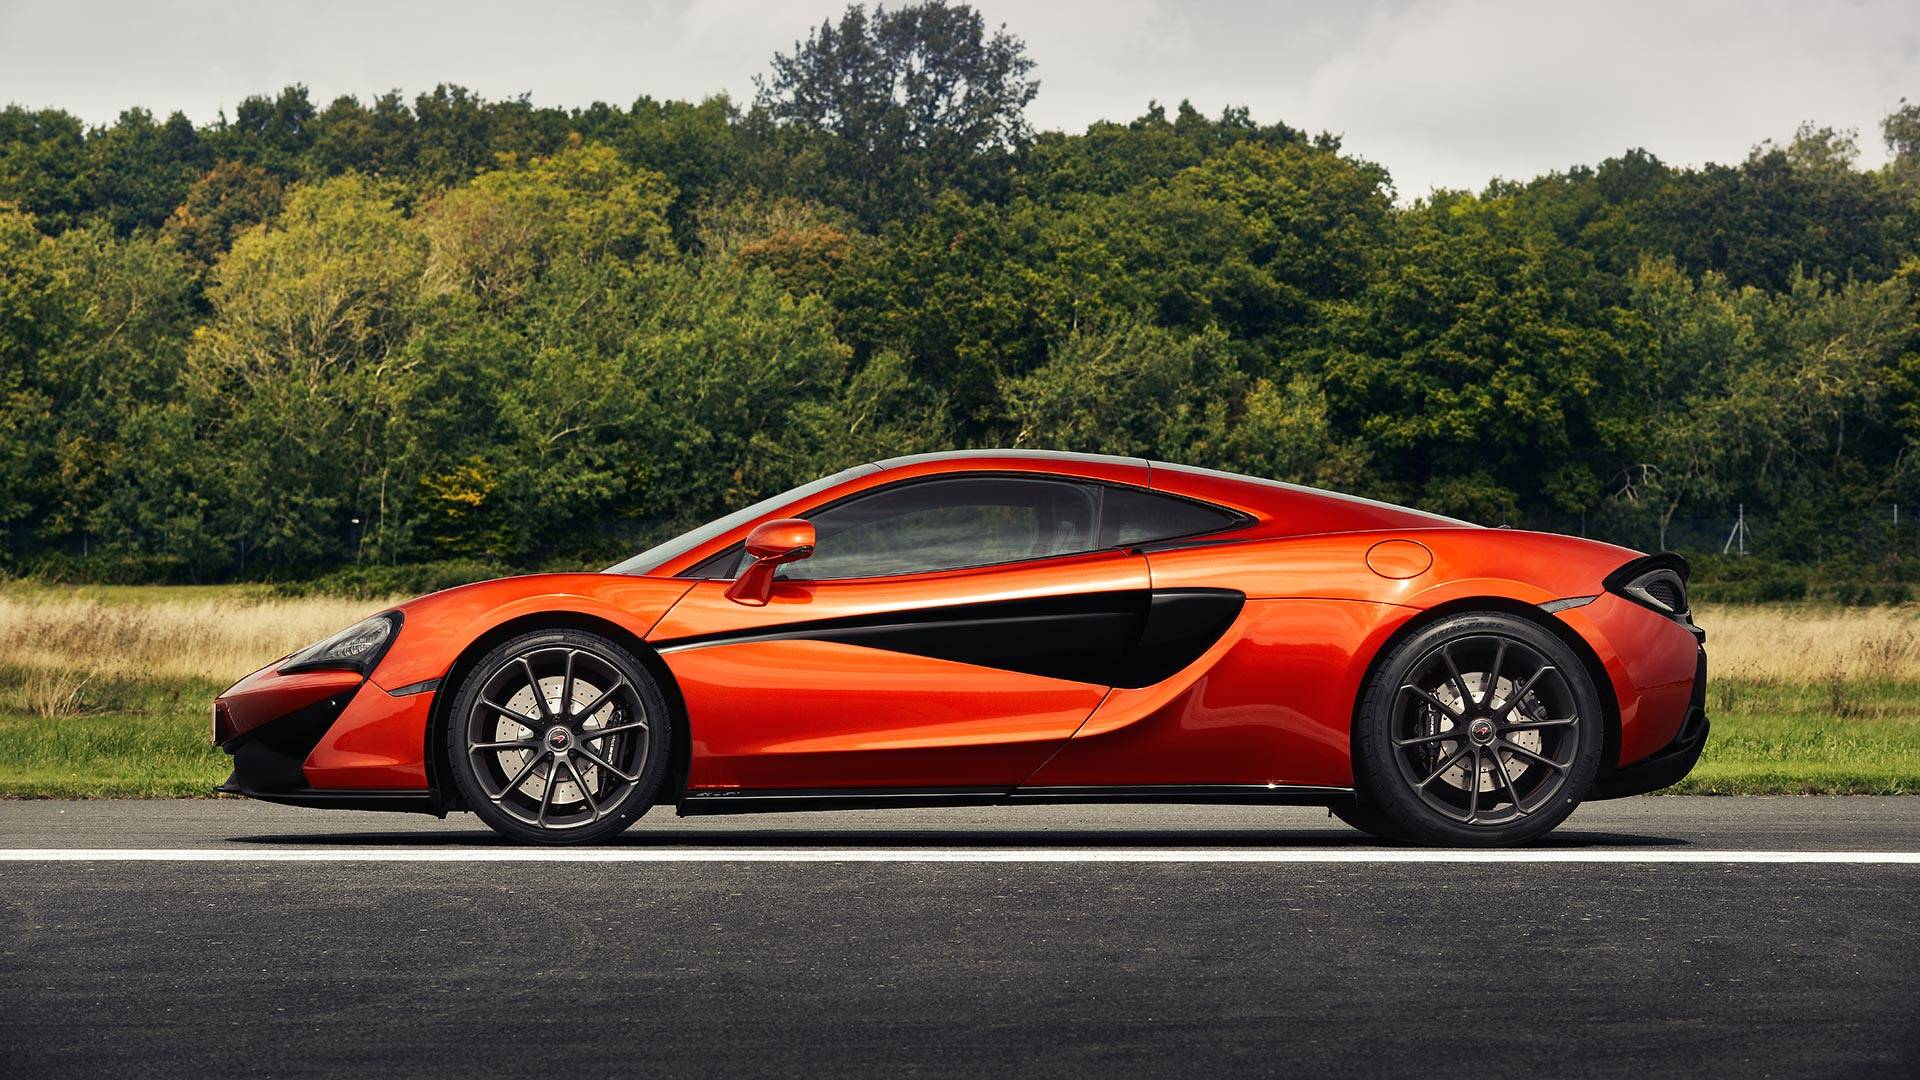 Mclaren Sports Series Now Available With Supersports Exhaust And